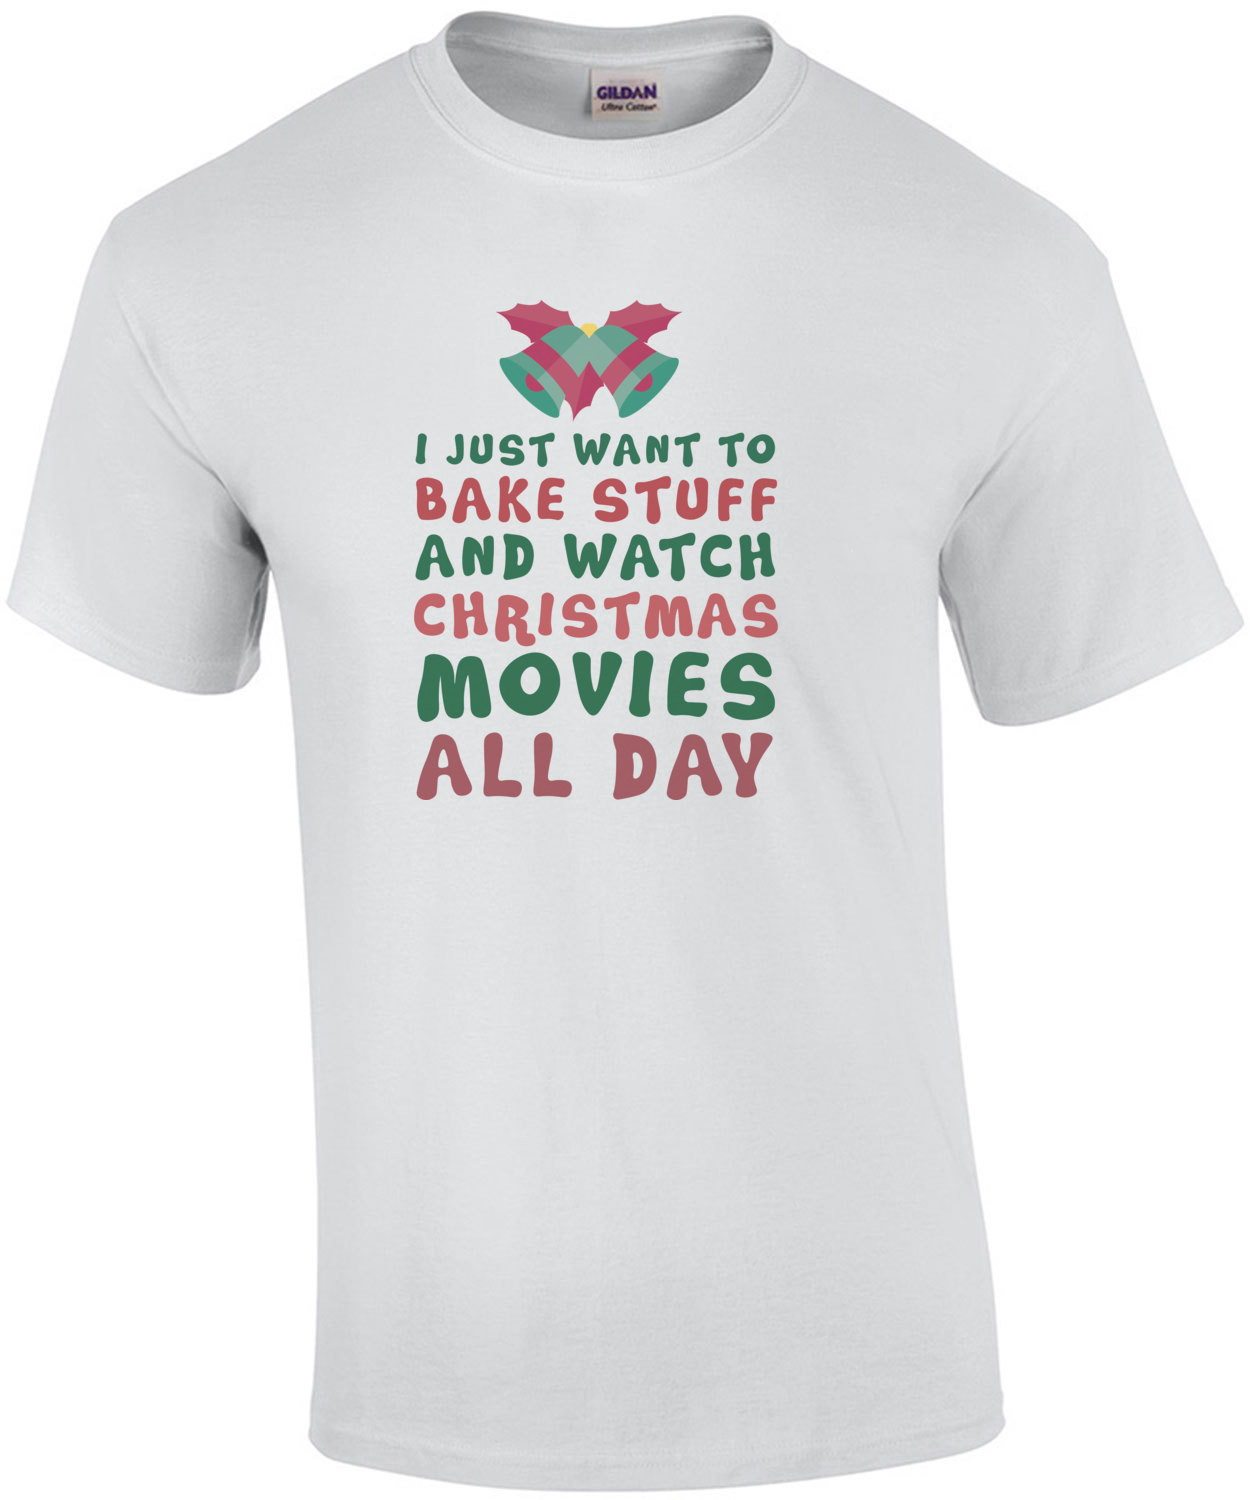 I just want to bake stuff and watch Christmas movies all day - Christmas T-Shirt